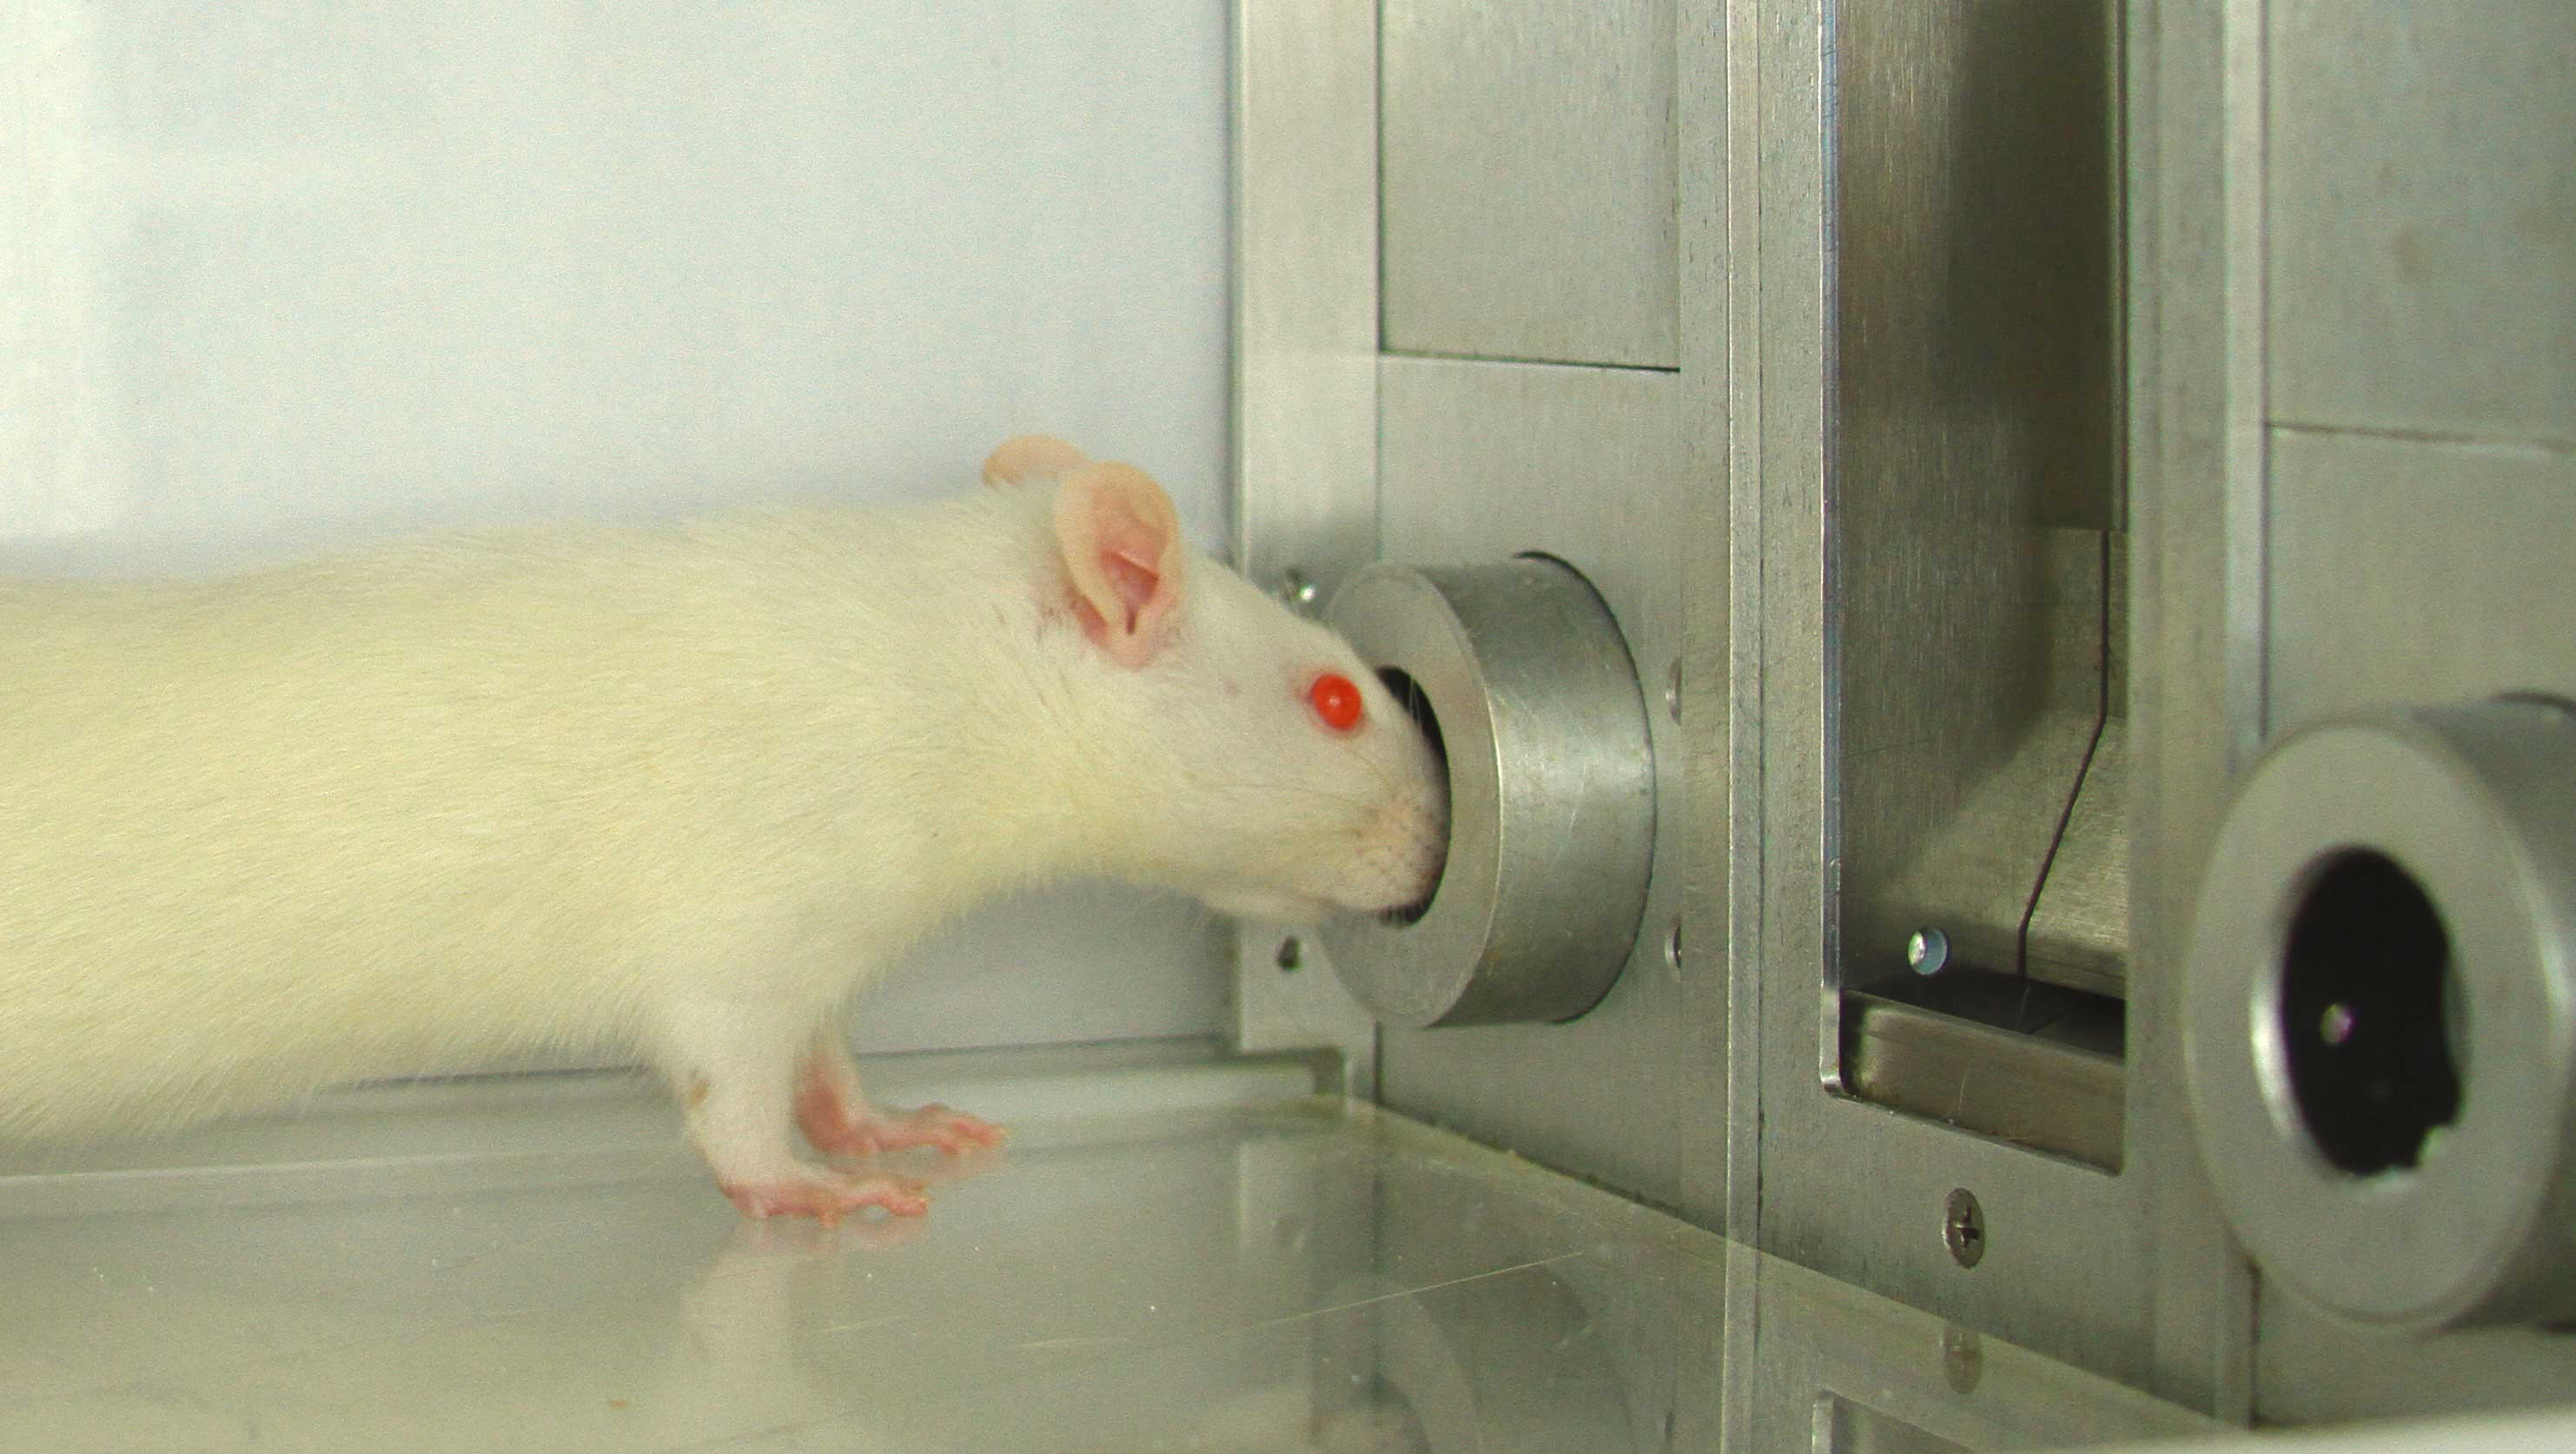 Researchers identified a portion of the brain that intensified the desire for certain rewards, such as cocaine. In the experiments, rats had to choose between two cocaine rewards by poking their noses through small holes in a wall. Image credit: Shelley Warlow